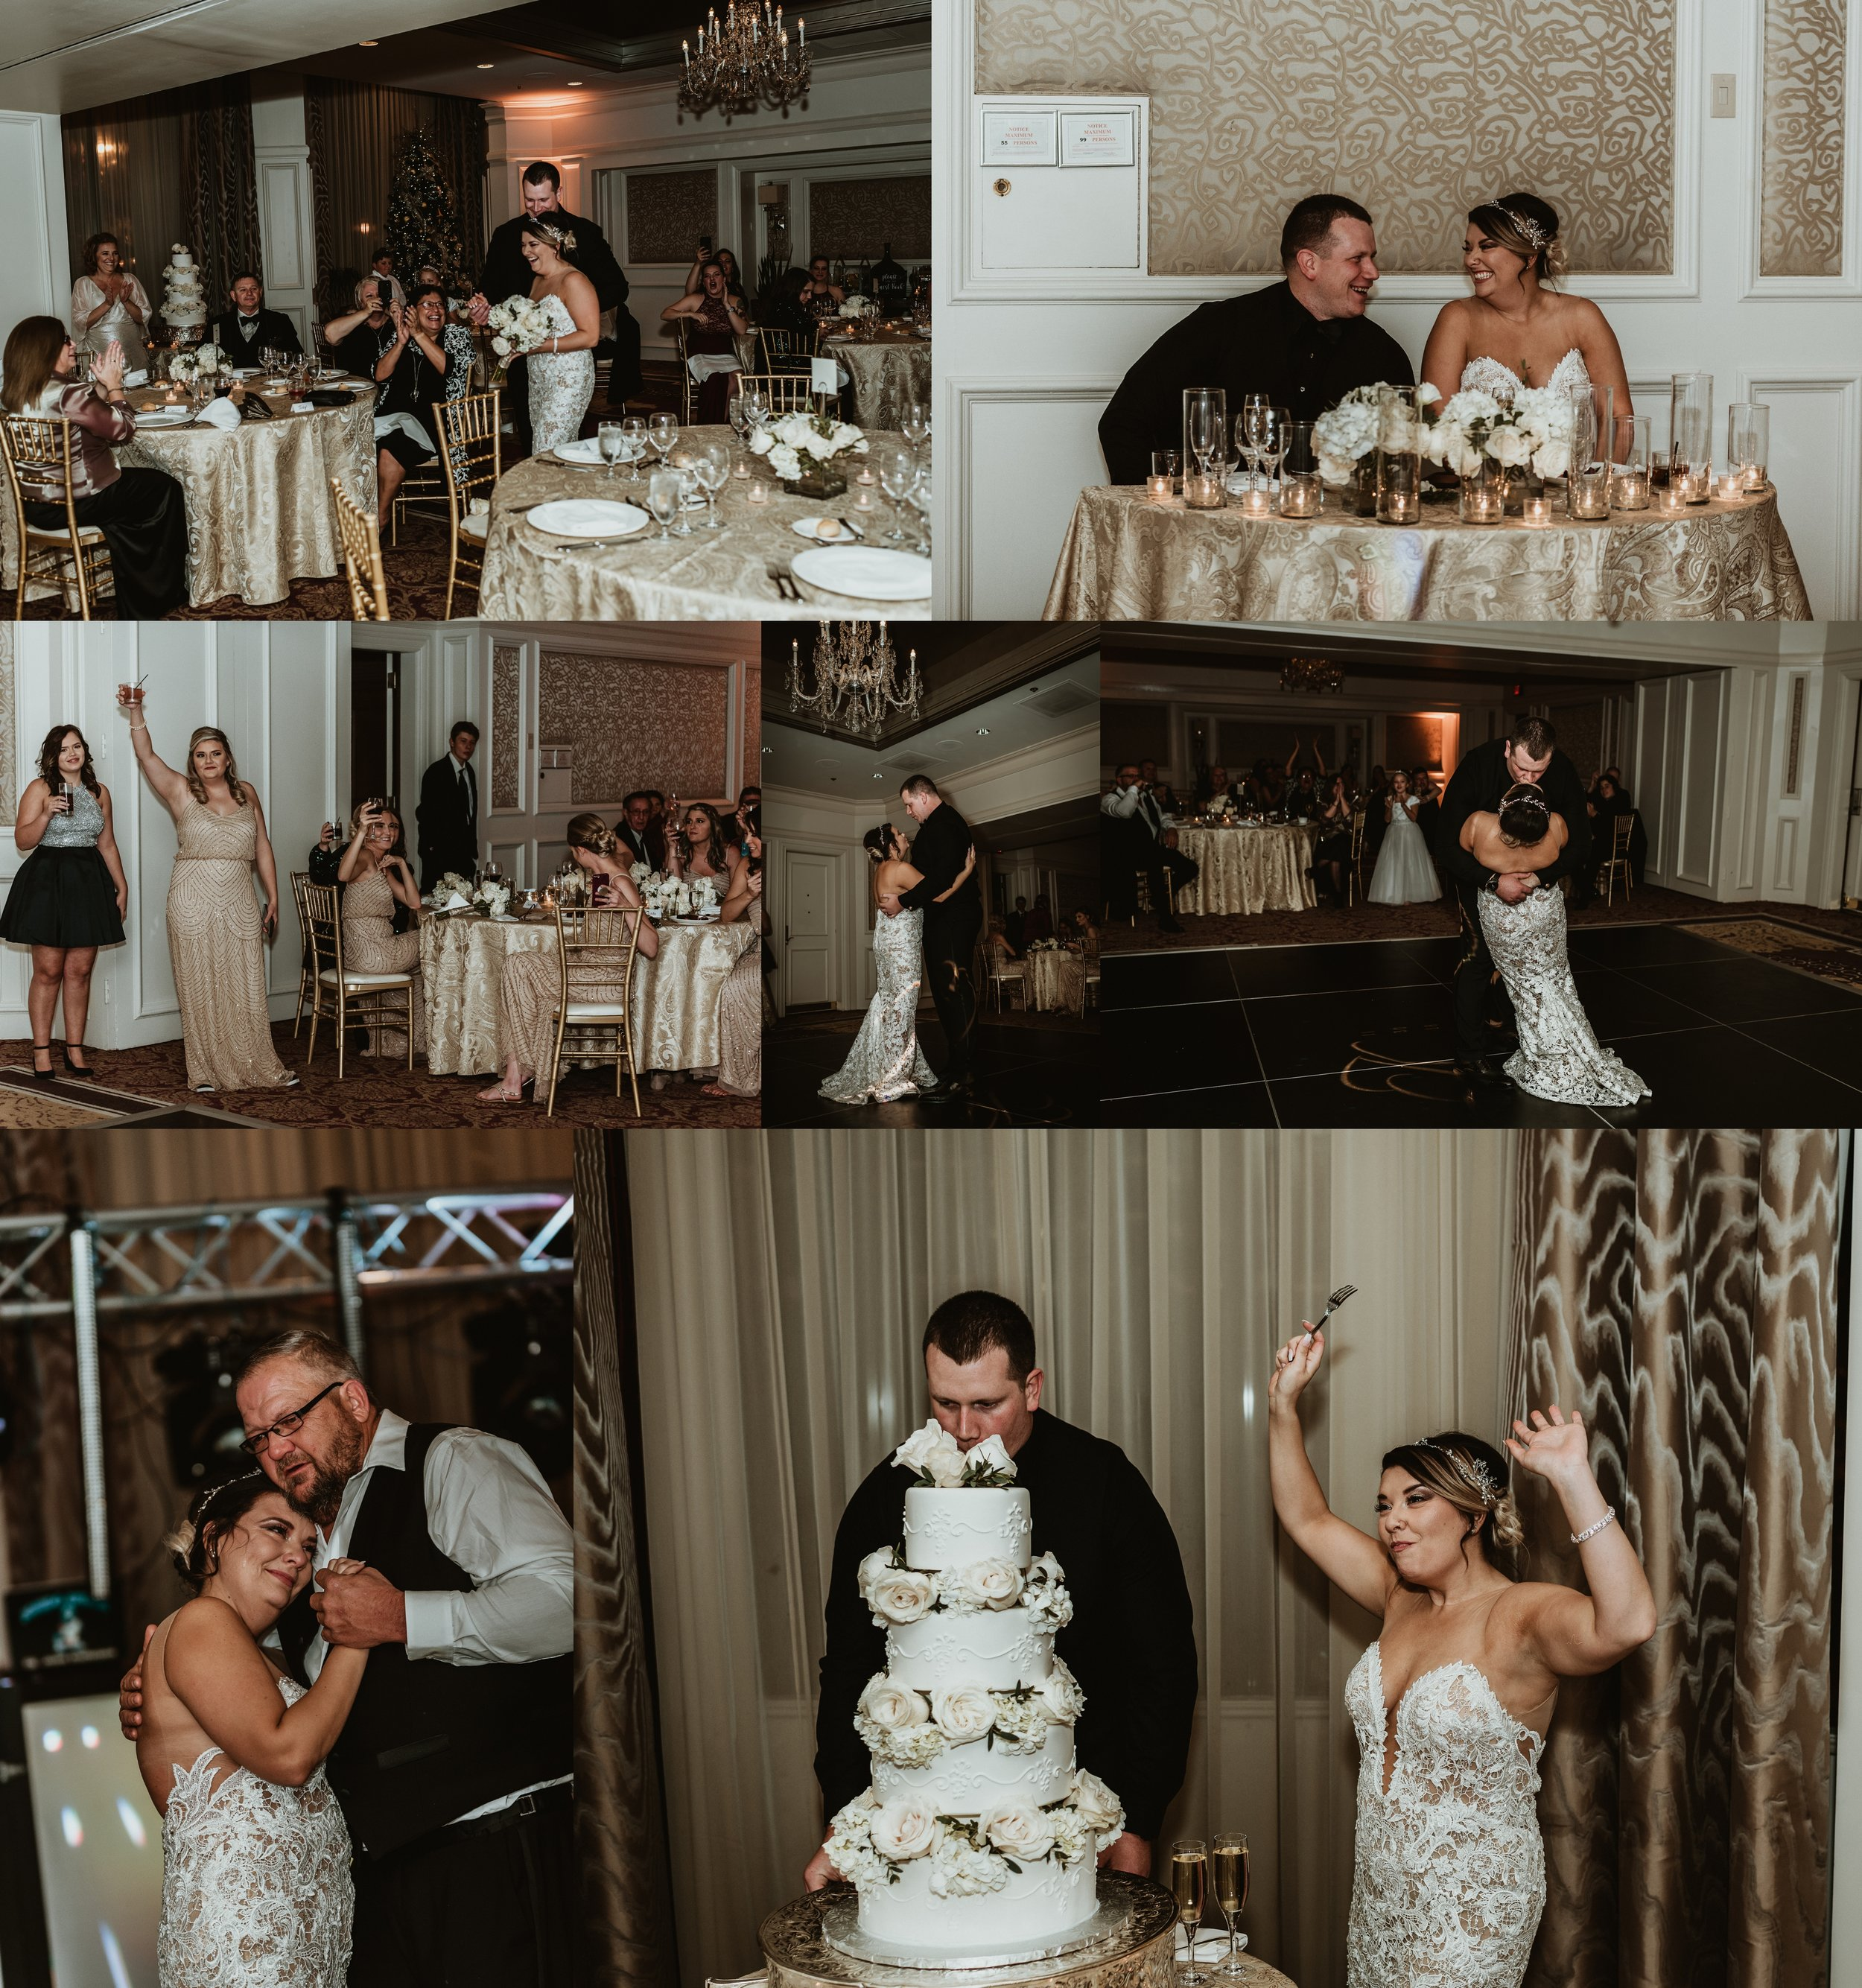 Classic Vintage Wedding | Ritz Carlton Atlanta, Georgia | Terry Farms Photography | Reception Photos